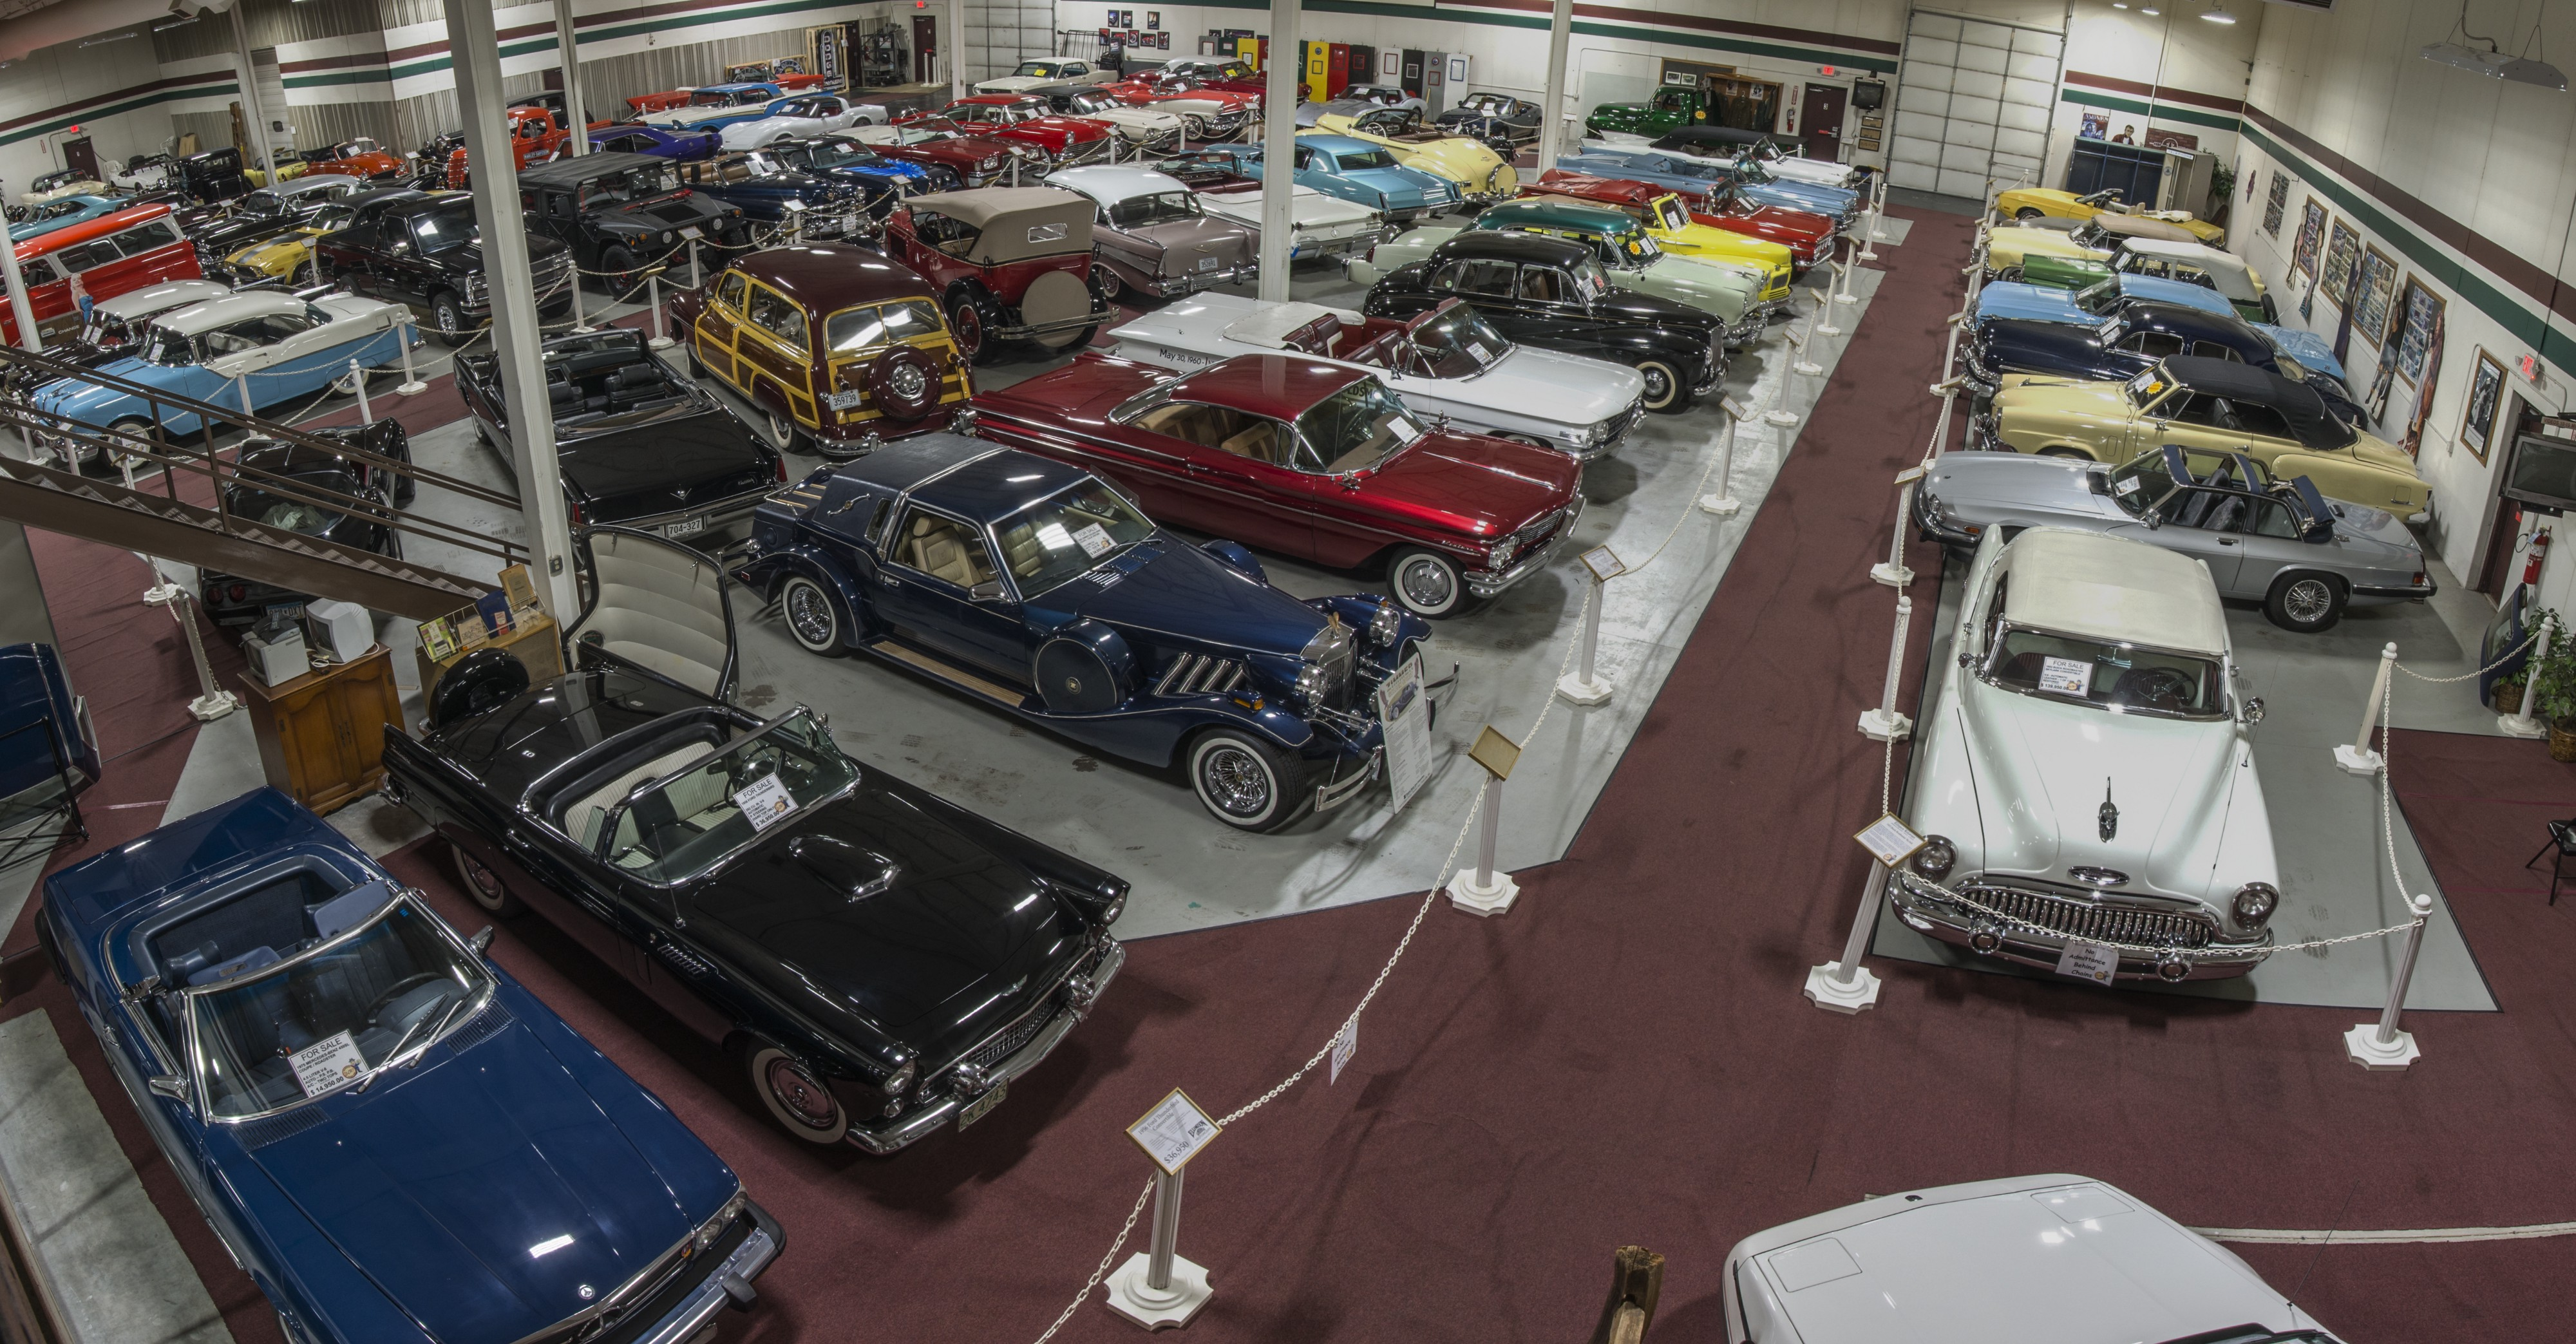 From Car Museum to Classic Car Dealer - My Classic Garage